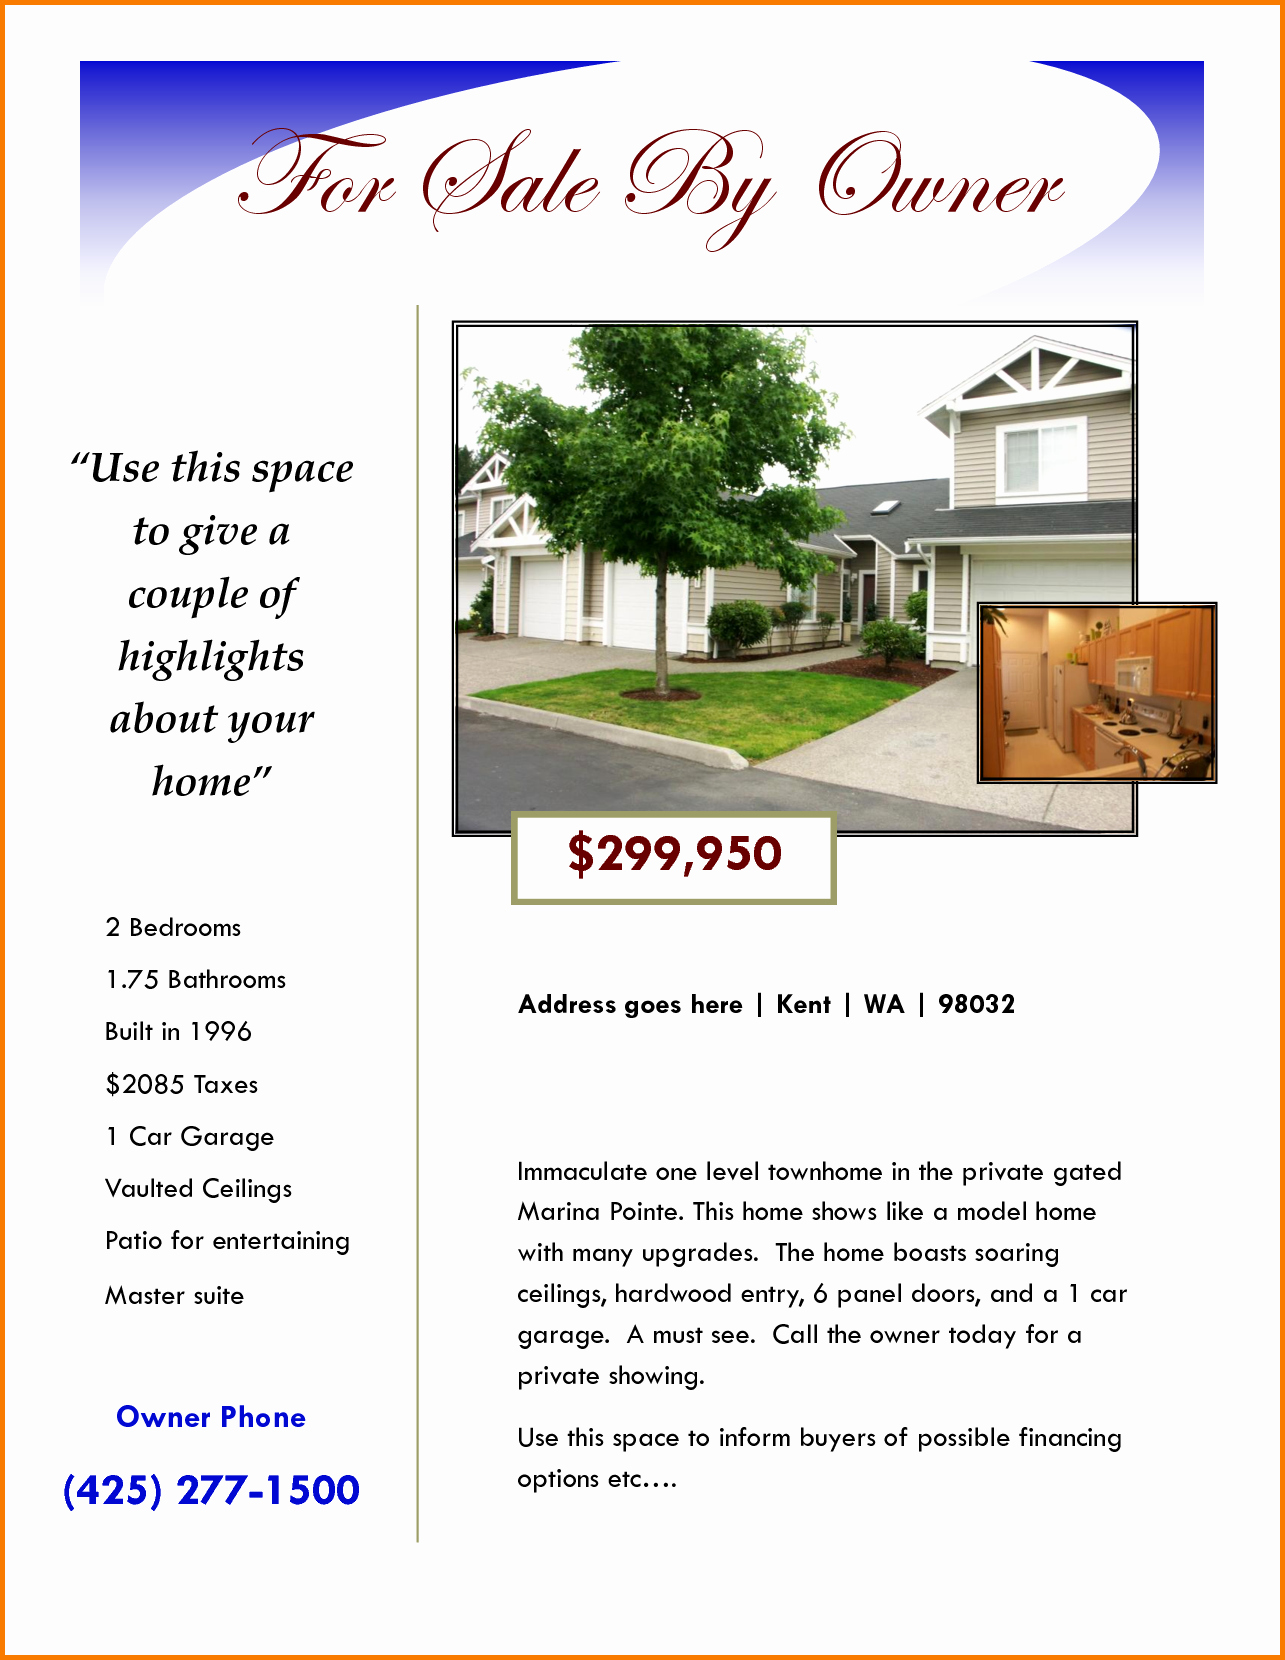 For Sale Flyer Template Best Of for Sale by Owner Flyer